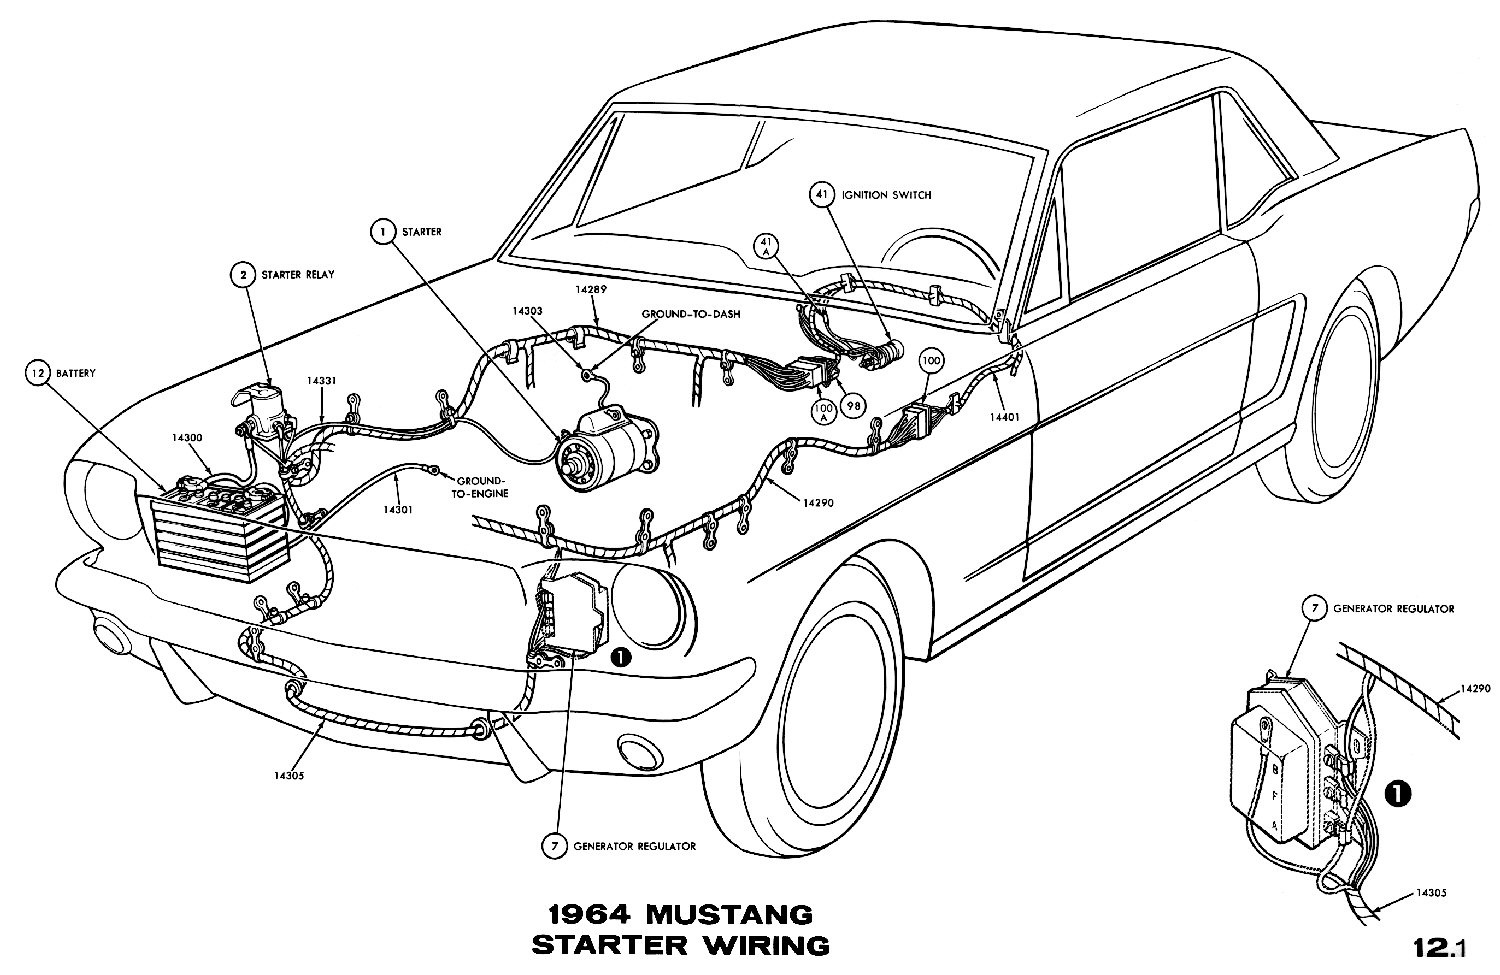 1964d 1964 mustang wiring diagrams average joe restoration 1969 mustang alternator wiring diagram at n-0.co